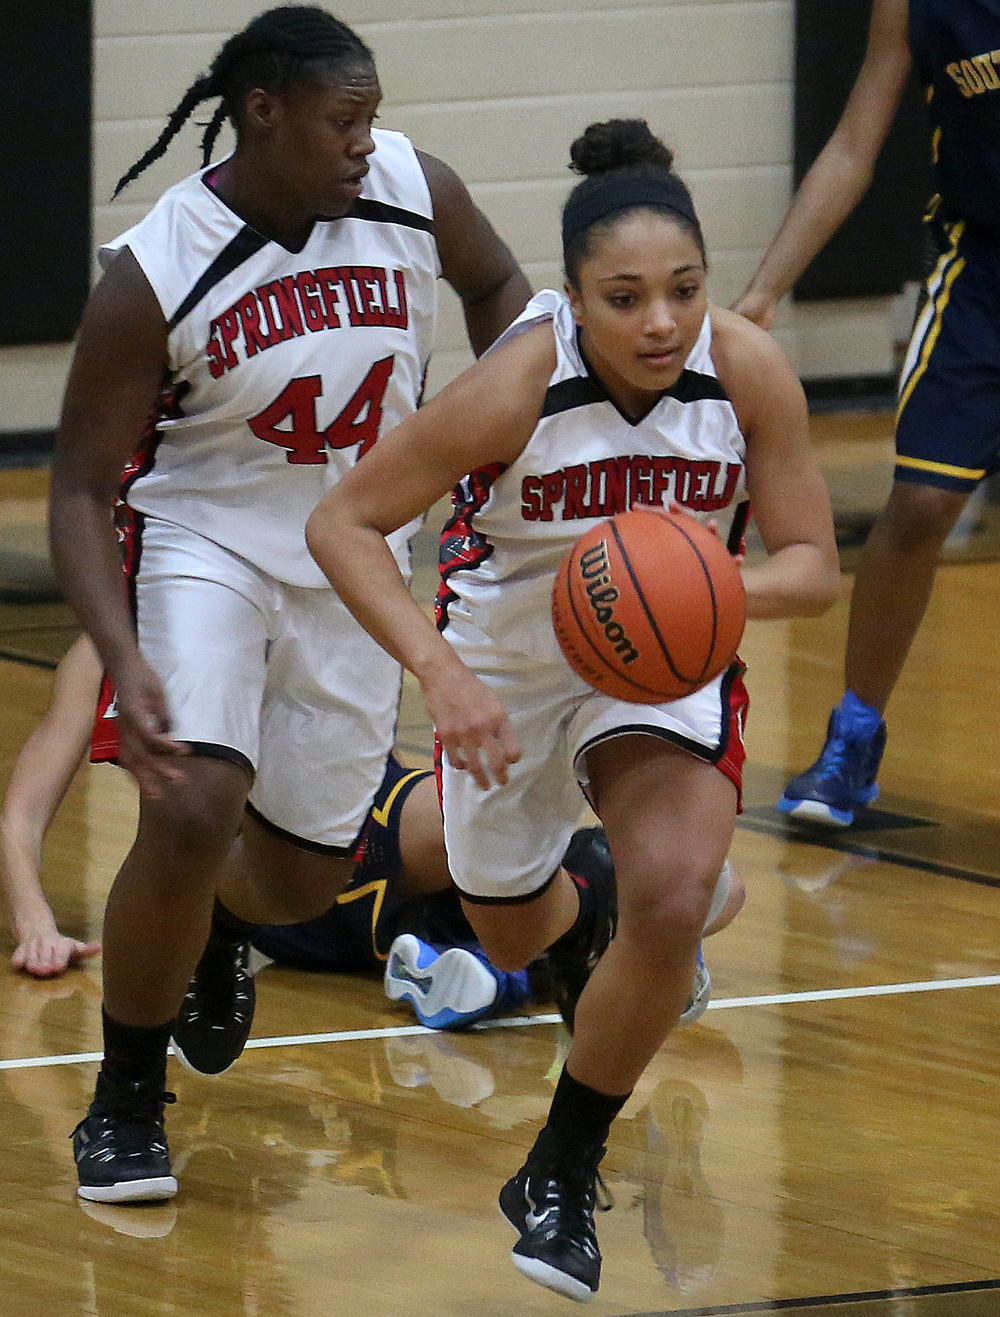 Springfield's Kyra Webster sprints up court with the ball while being covered by teammate Montshianna Pulliam. Springfield High defeated Southeast 49-35 during second night action at the Girls City Basketball Tournament held at Belz Gym at Sacred Heart-Griffin's west campus in Springfield on Wednesday evening, Jan. 28, 2015. David Spencer/The State Journal-Register